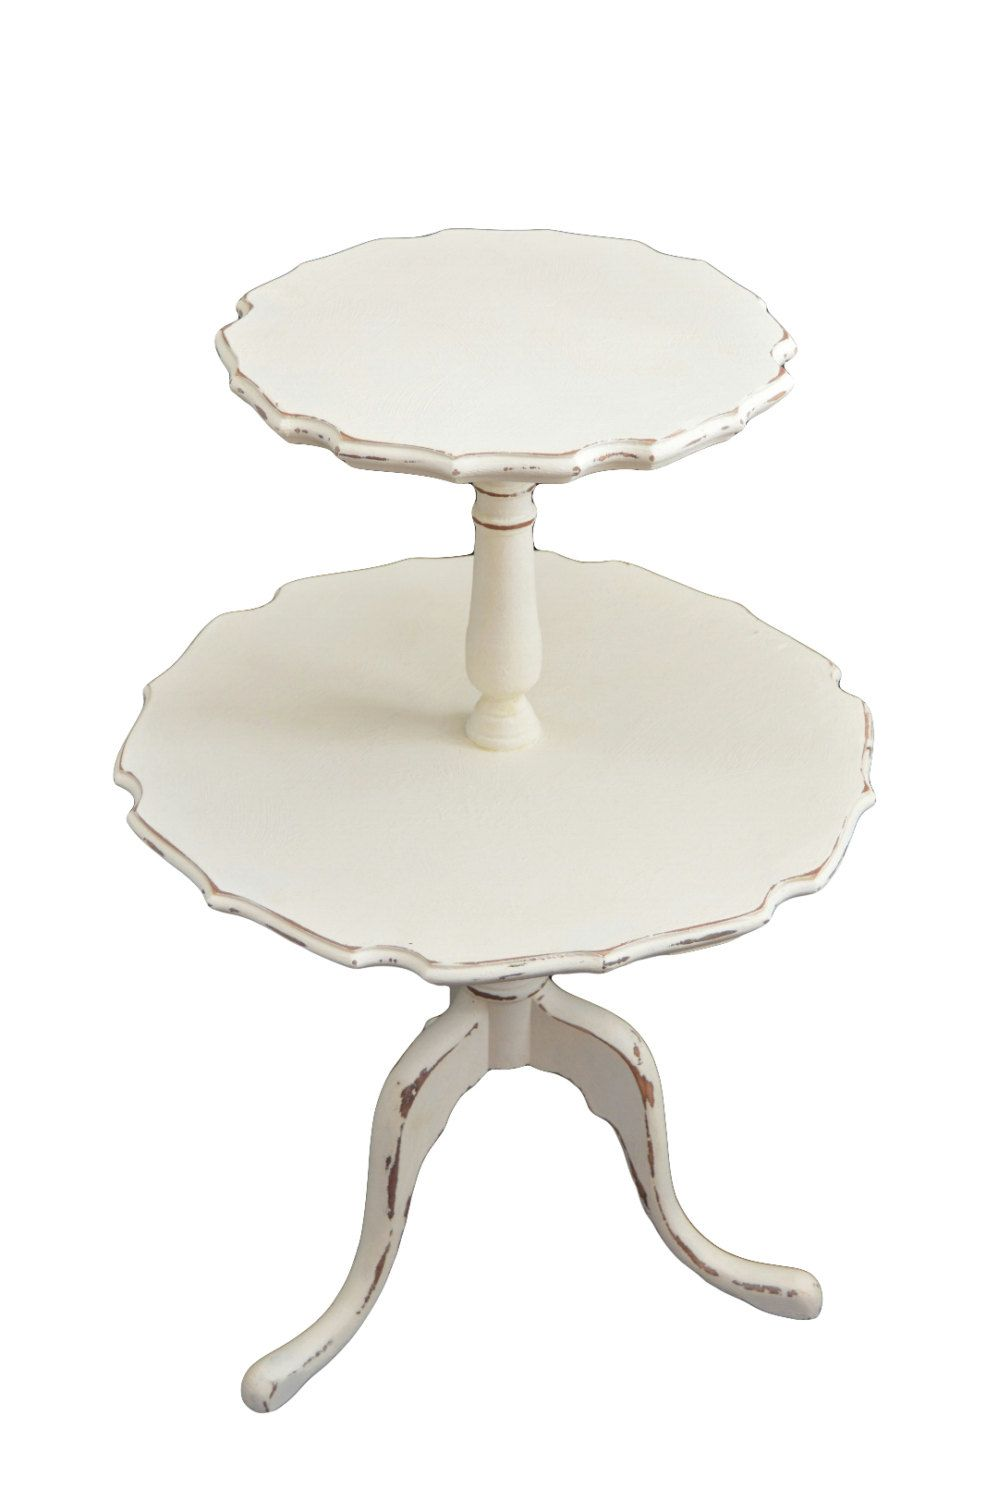 Table 2 Tier Scalloped Pedestal Table Vintage Chippy White Painted Furniture Round Table Shabby Chic Boho Decor Old Farmhouse Nightstand White Painted Furniture Painted Furniture Whimsical Furniture